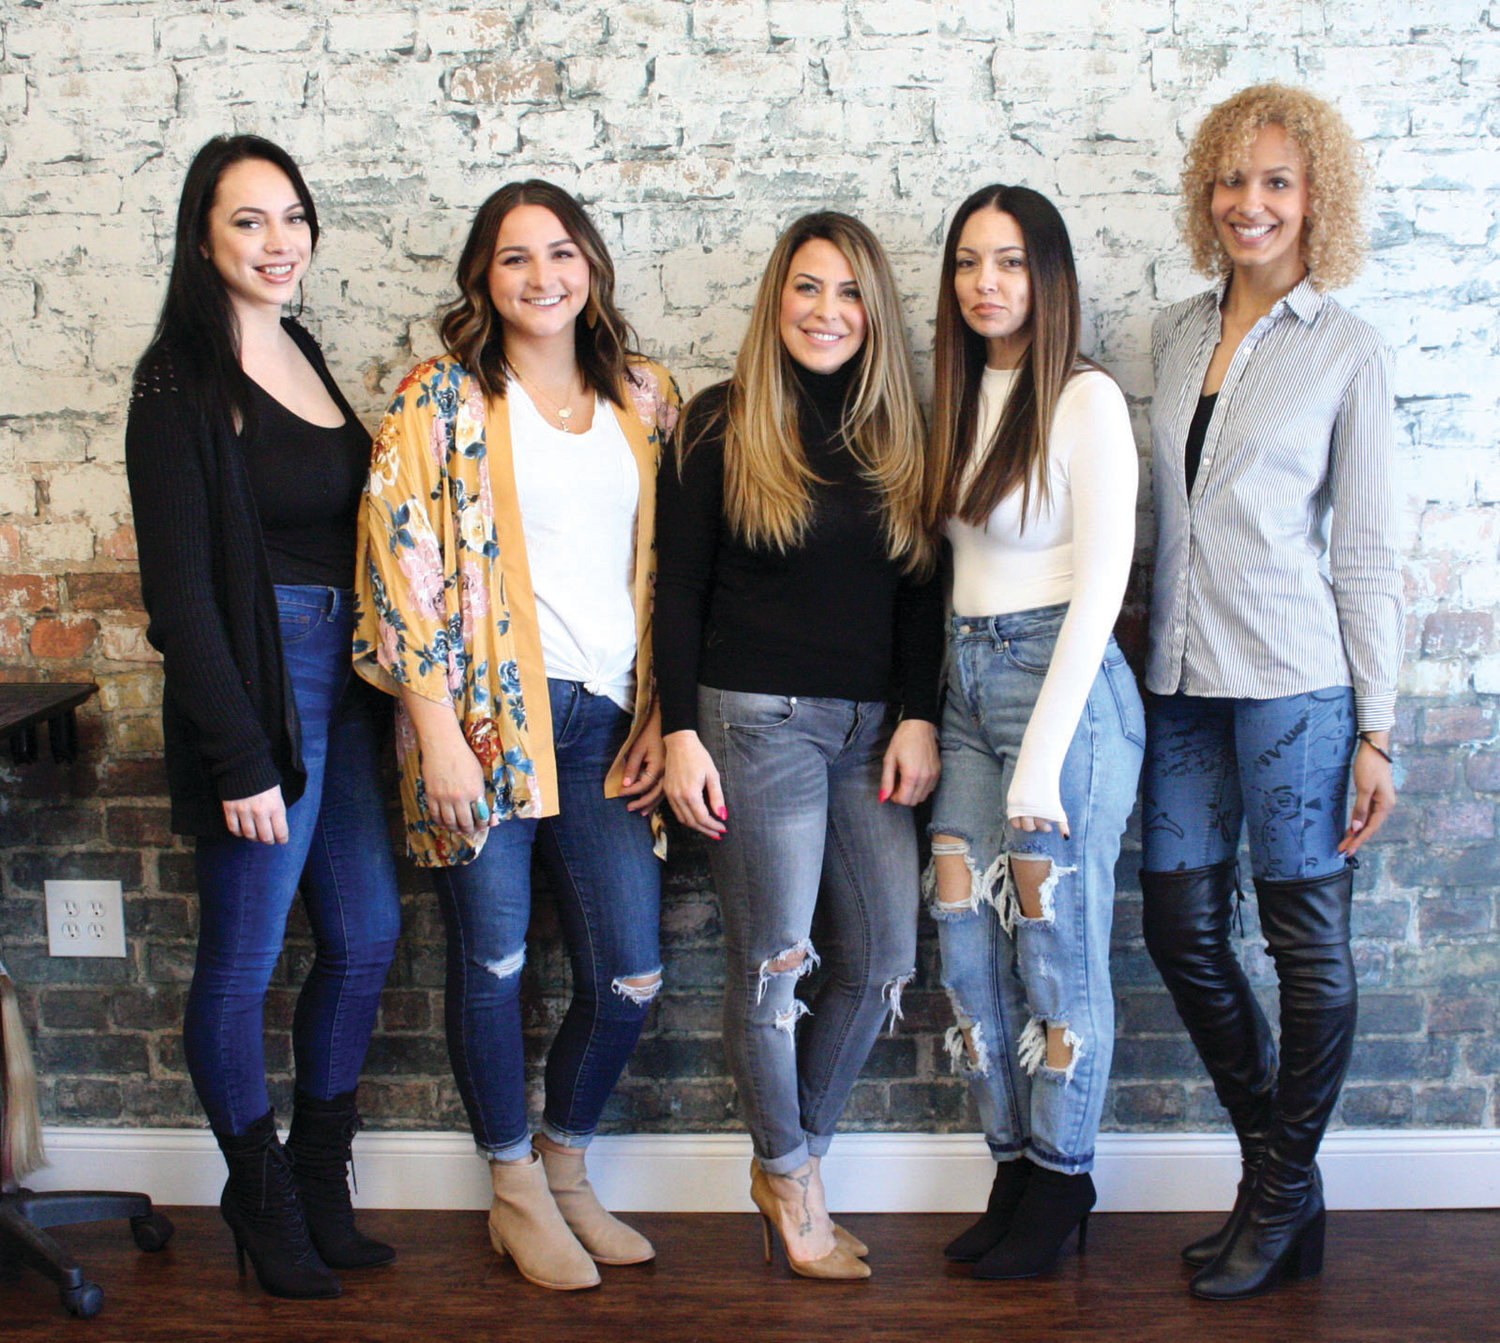 SARA'S TEAM: Elysian Beauty Studio owner Sara Bruno (center) -- pictured from left to right with team members Willow, Tori, Reena and Kayla -- said that she loves being able to inspire confidence at her business every day.